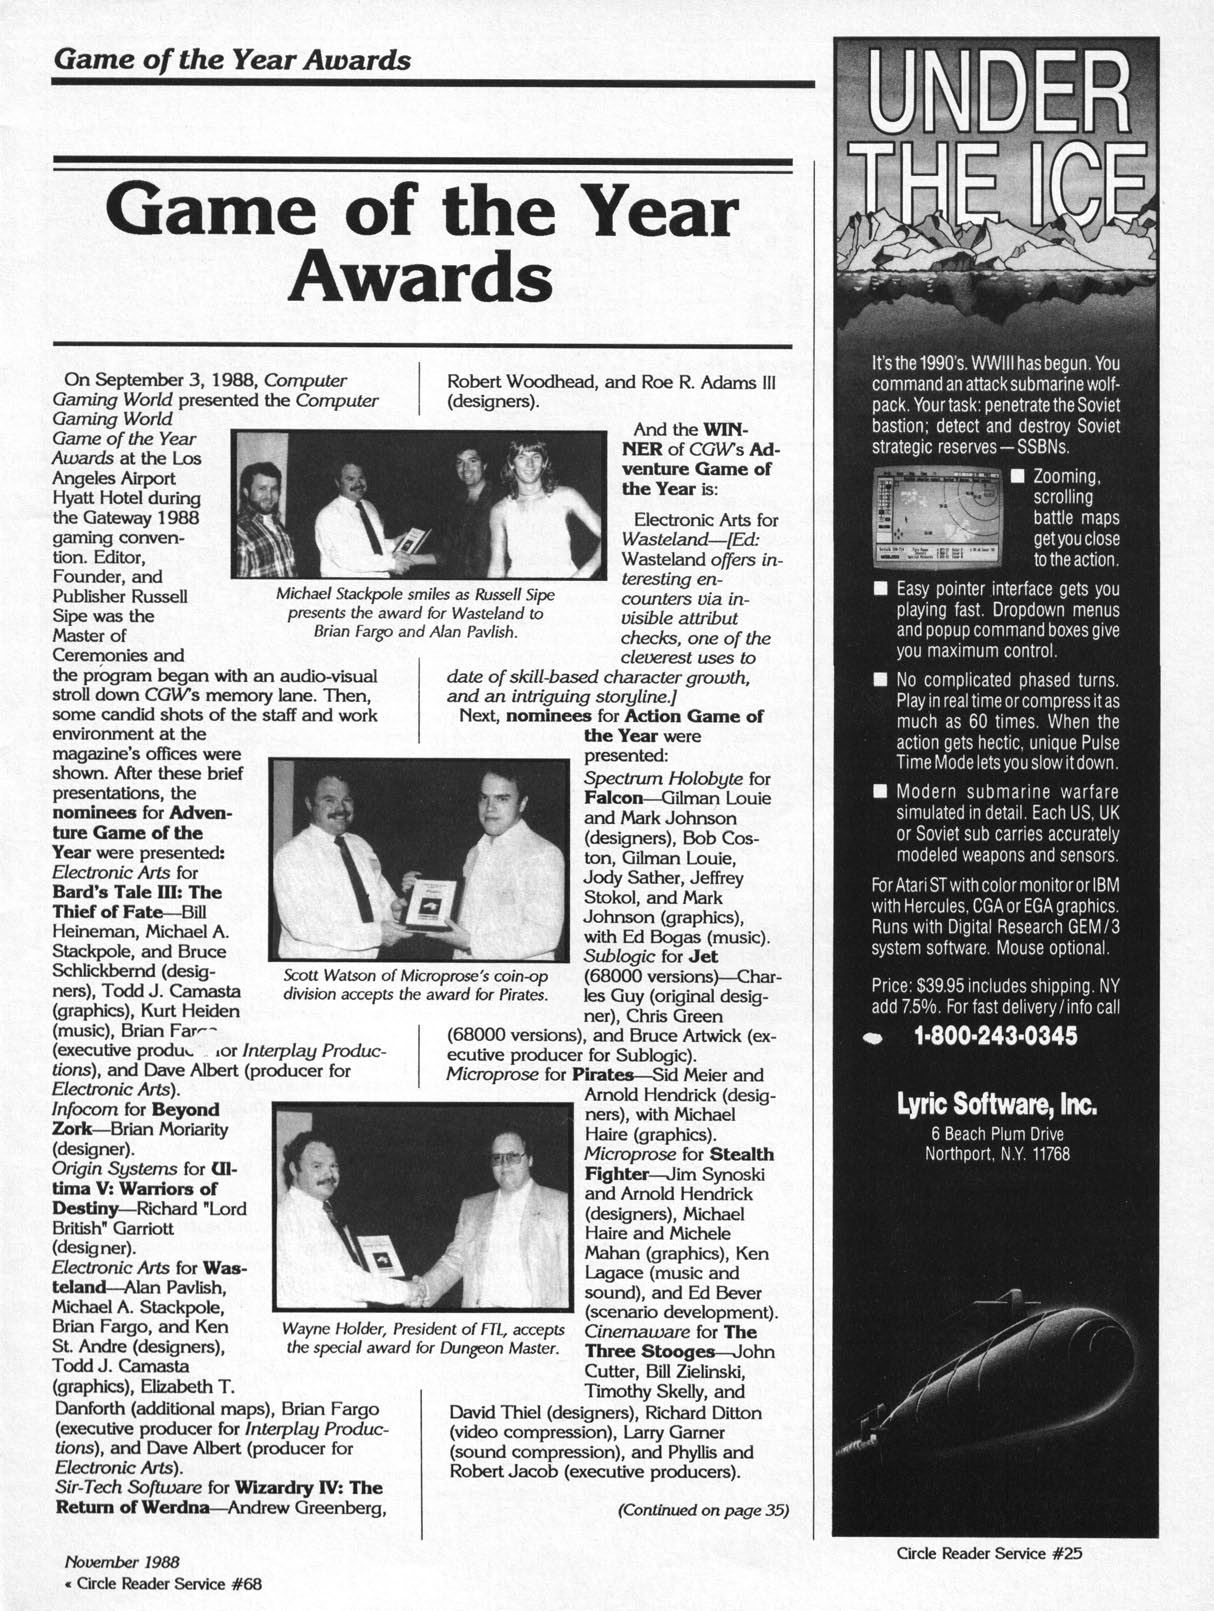 Dungeon Master Article published in American magazine 'Computer Gaming World', Issue #53 November 1988, Page 21